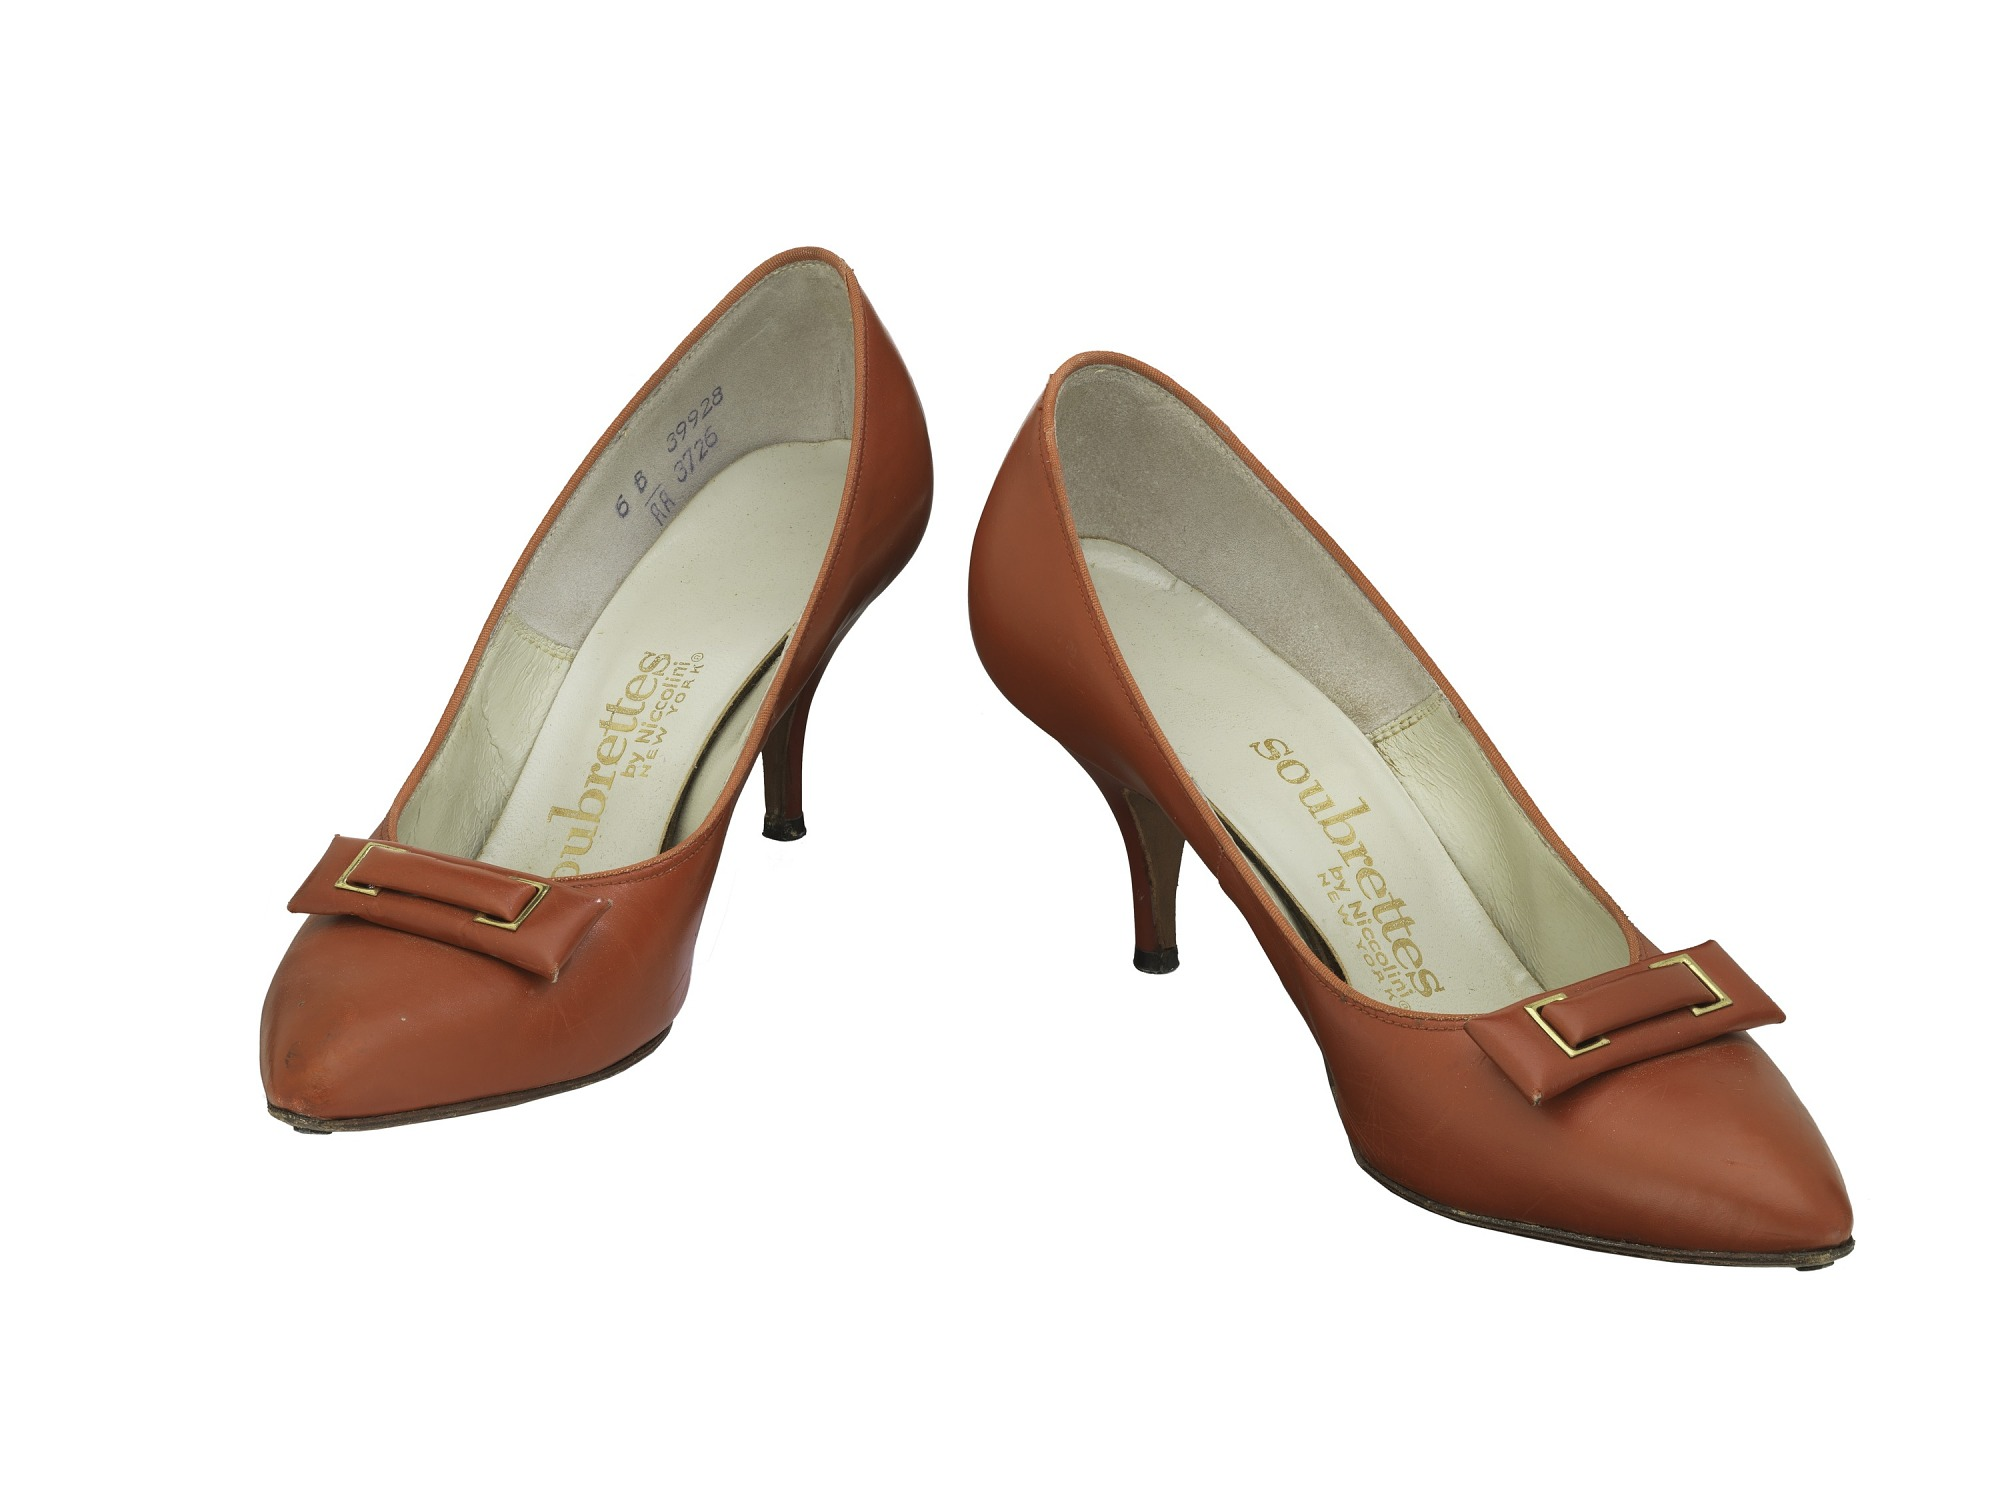 images for Women's Red Leather Shoes